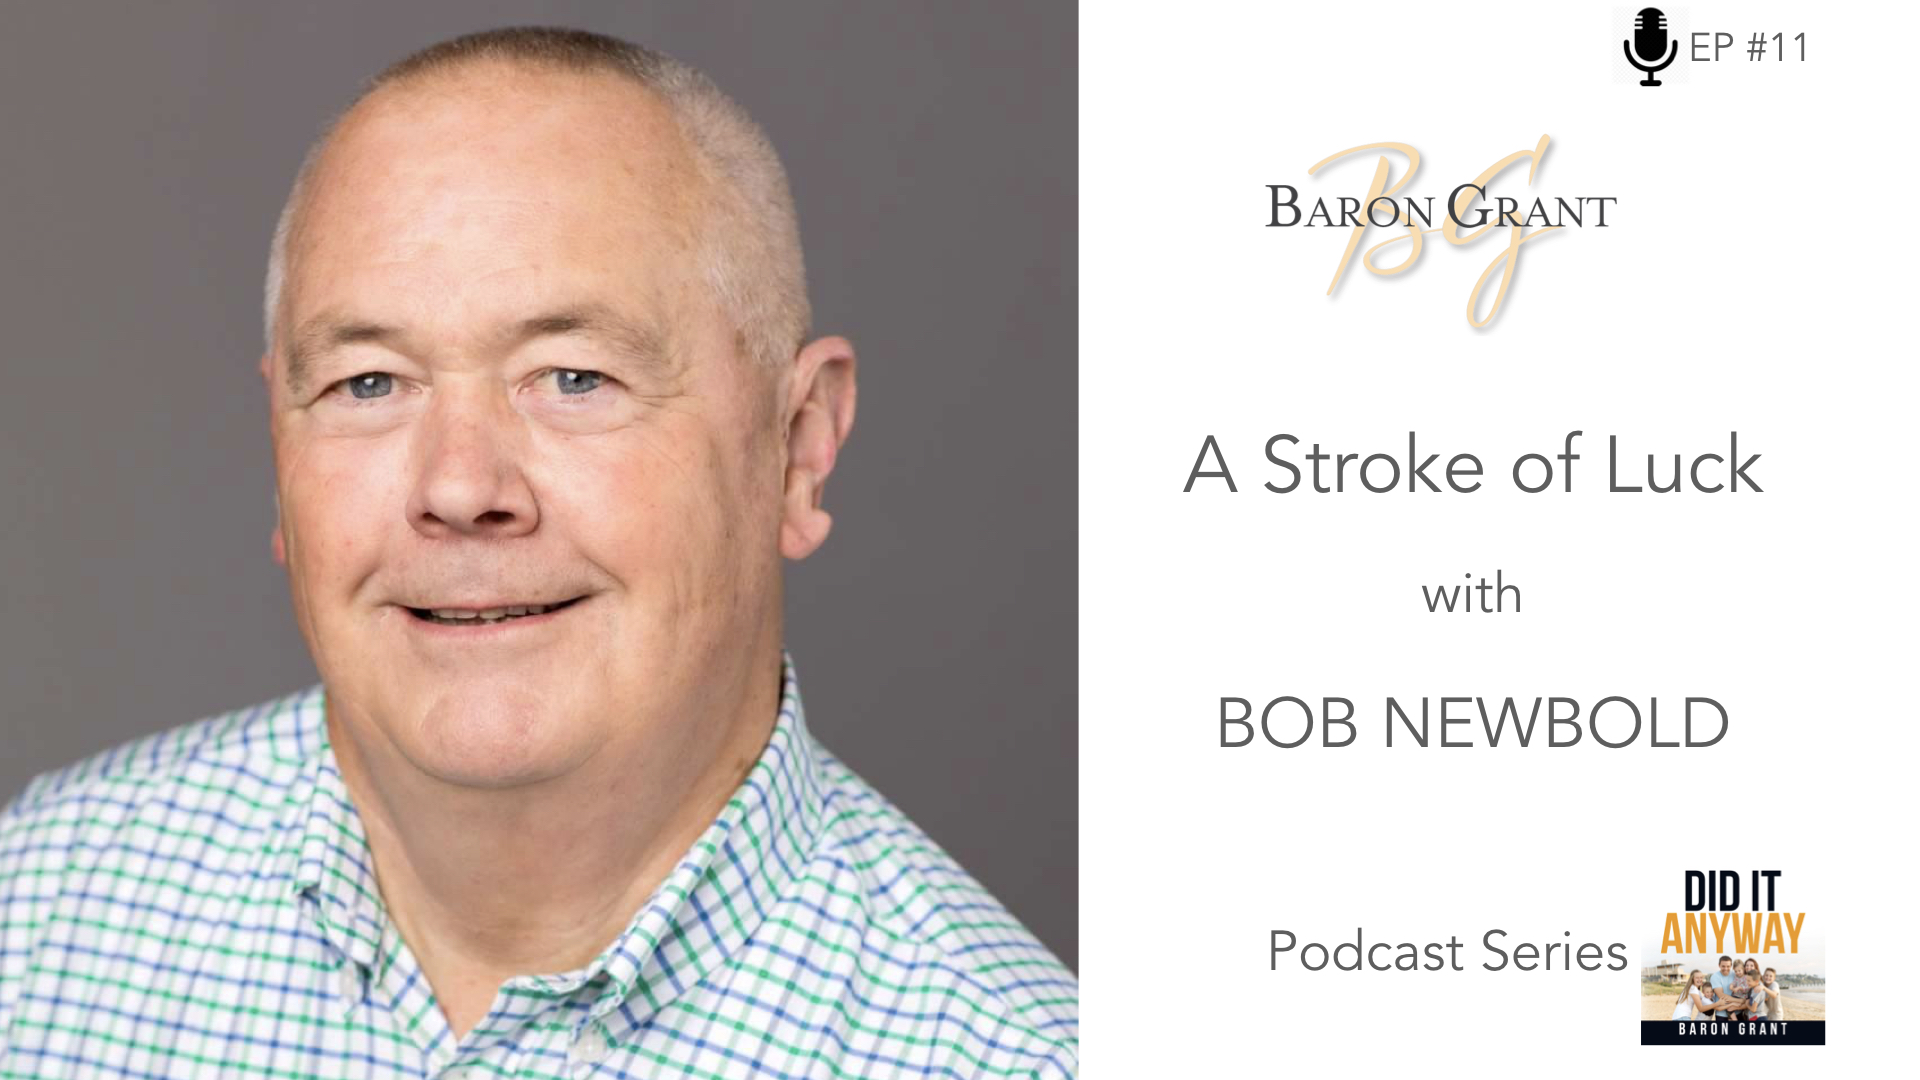 - We can't always choose what happens to us in our lives. Sometimes challenges are thrust upon us. How we choose to deal with those challenges is a totally different story. My guest on this podcast, Bob Newbold, is an amazing example of someone who found the good in the challenge that he faced. Not only did he simply find the good - he went and did something good with it, giving back to people around him. Join me as Bob shares his amazing story